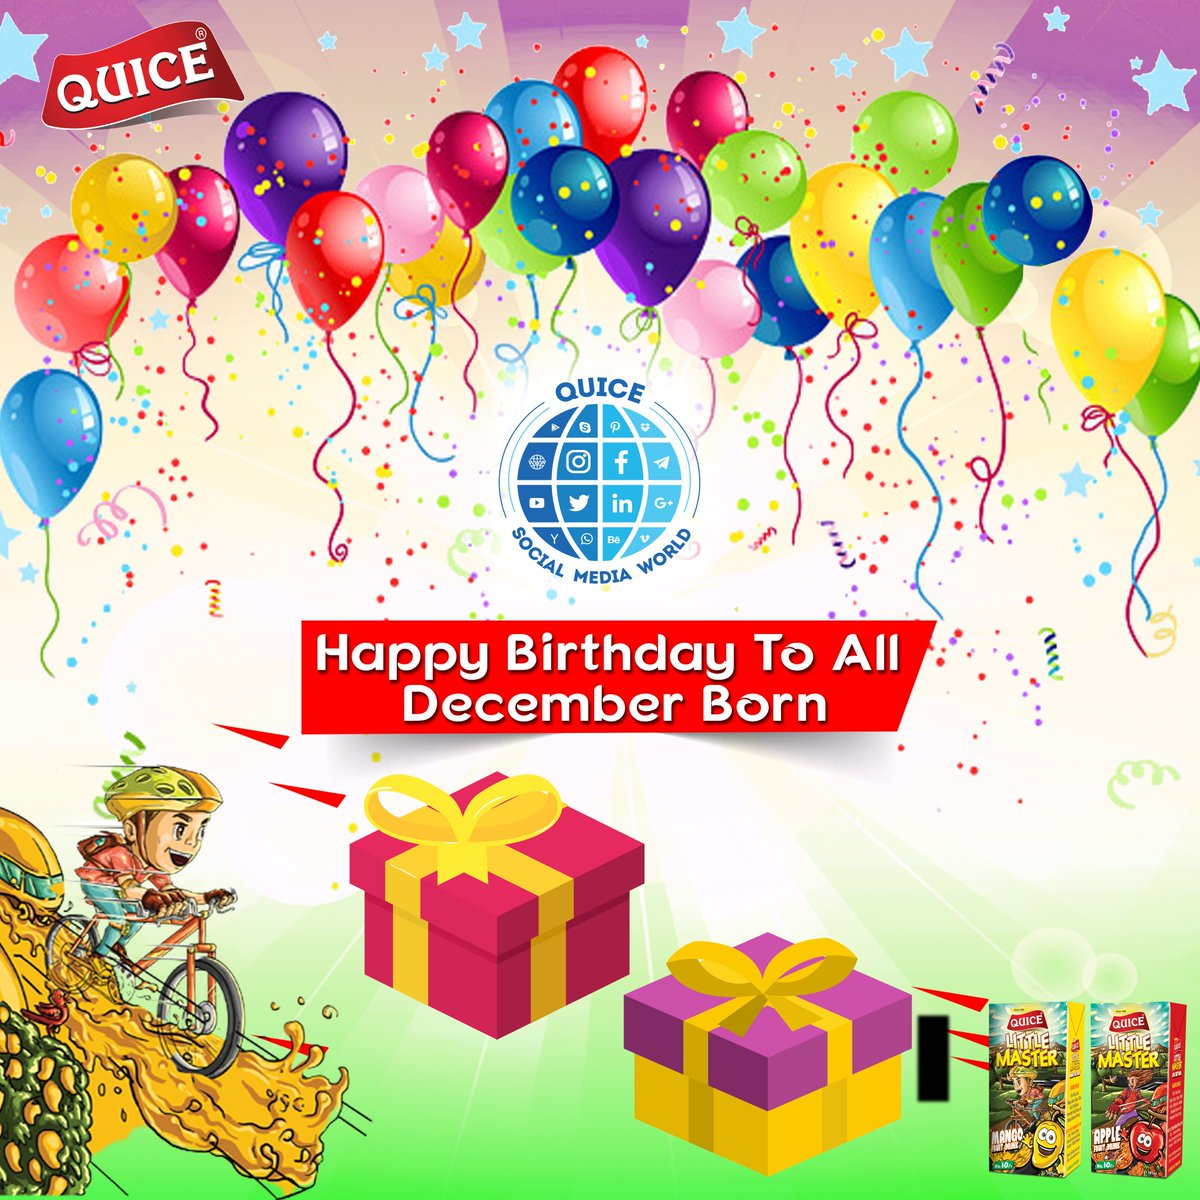 Quice Food Official On Twitter Wishing You All December Born A Very Happy Birthday 3 May You All Live A Prosperous And Happy Life Ahead Empower Your Birthday Celebration With Quice Quice Truly